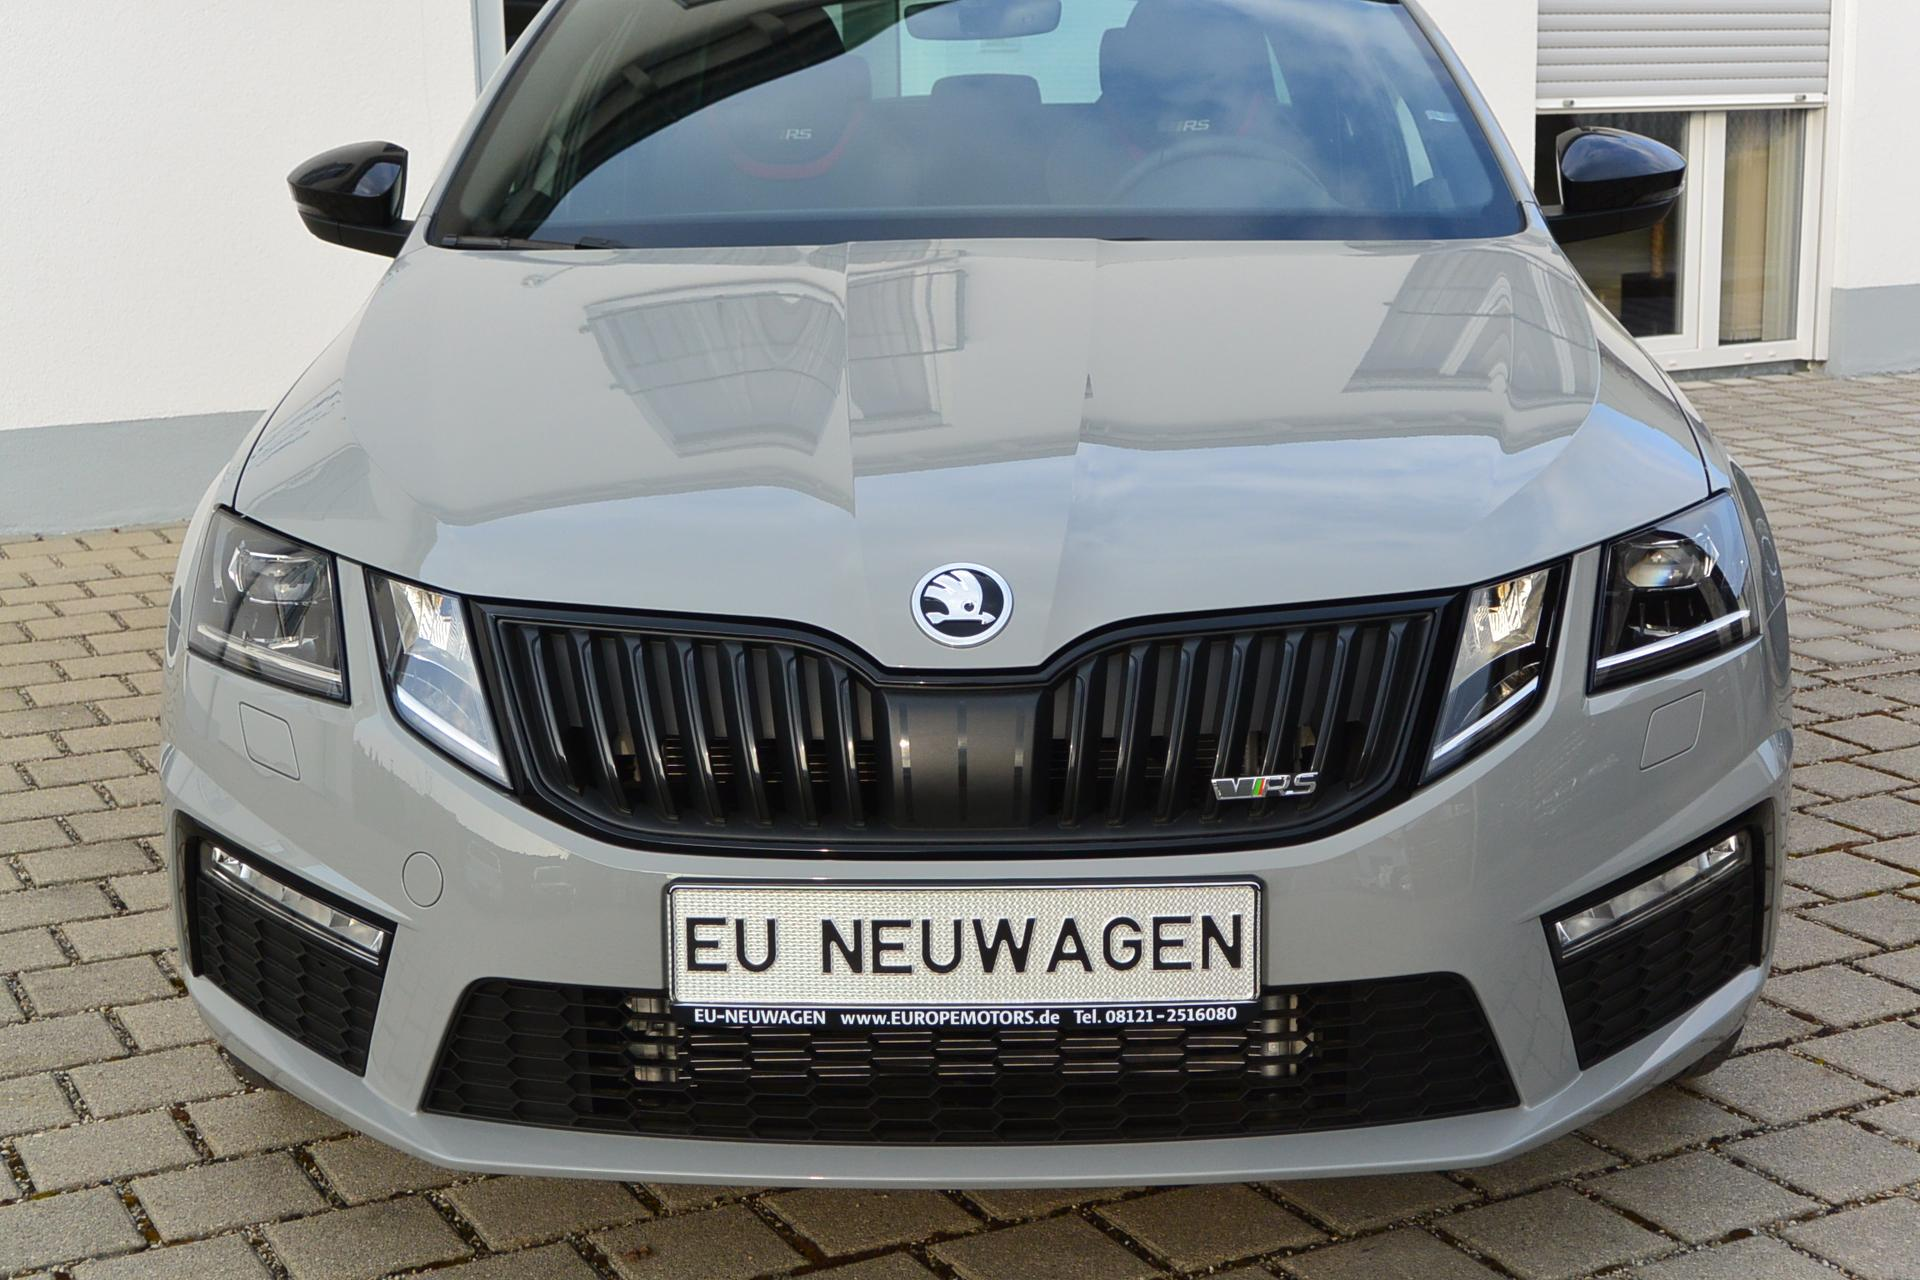 skoda octavia rs lim 2 0 tsi 180 kw 245 ps reimport eu. Black Bedroom Furniture Sets. Home Design Ideas